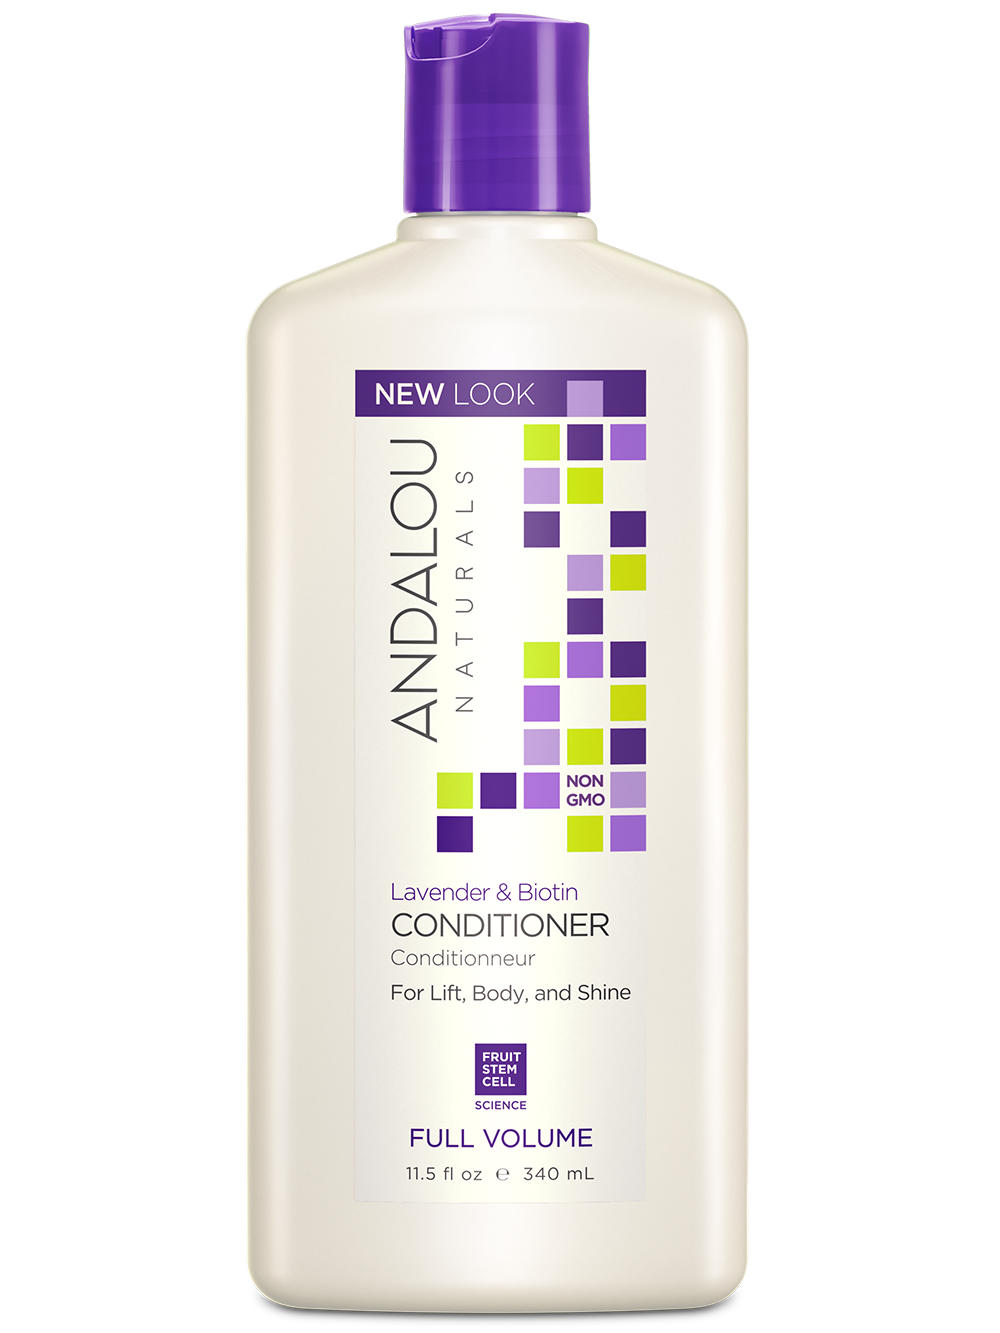 Andalou Naturals Lavender & Biotin Full Volume Conditioner - Harvest Haven